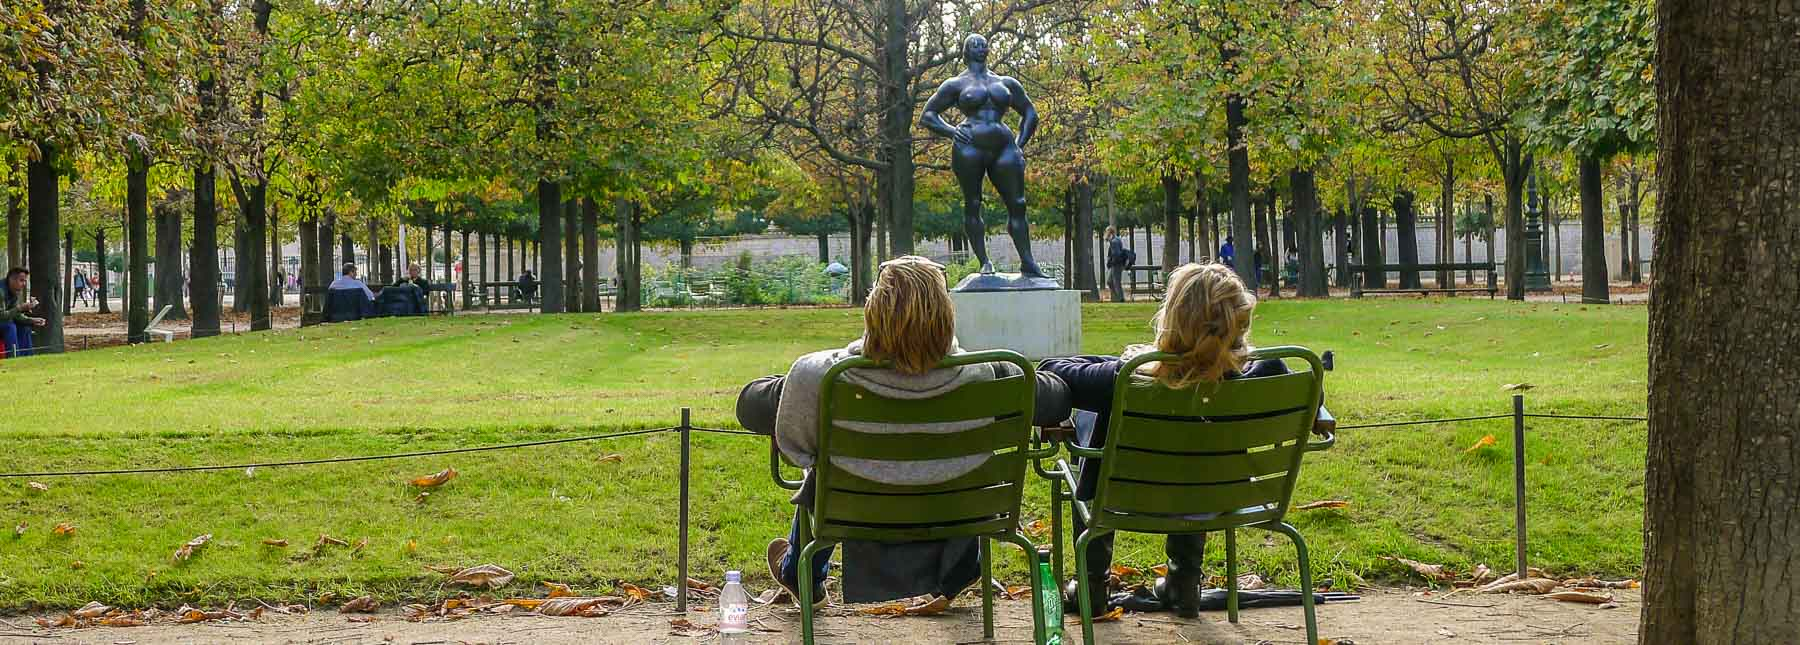 Couple in chairs looking at statue.